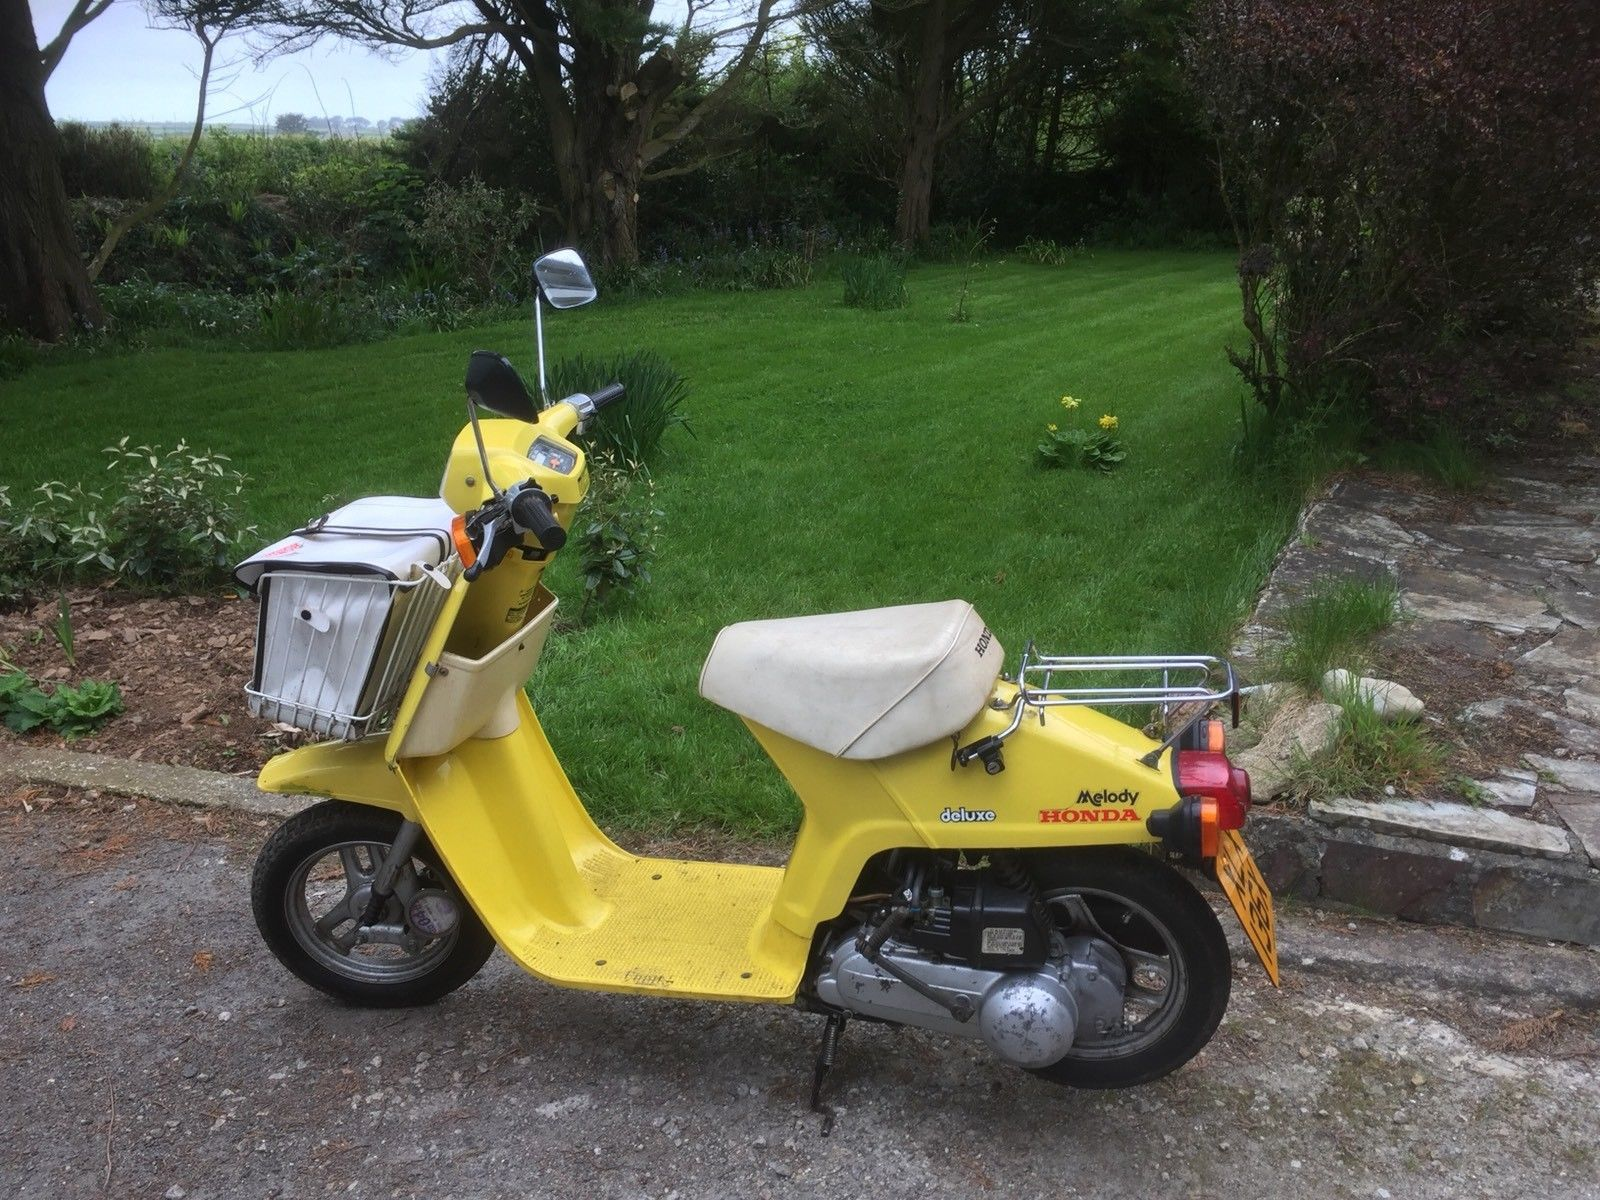 Honda Melody Scooter Moped Vintage Collectable Ebay Moped Vintage Collection Honda